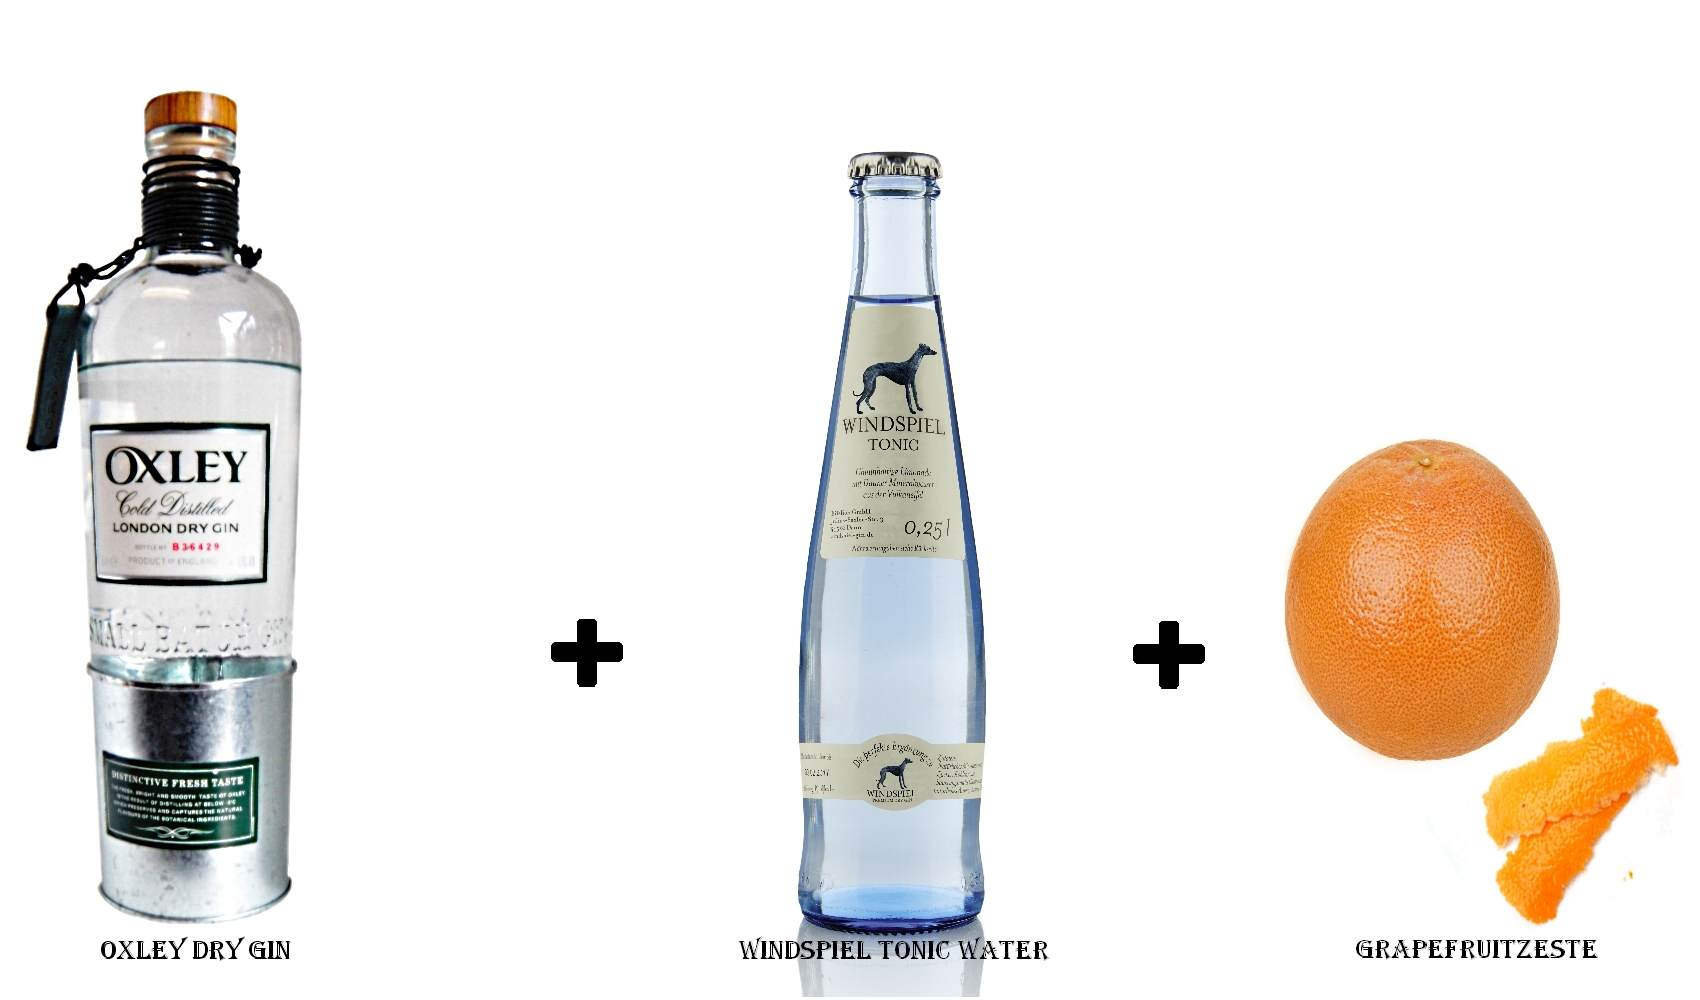 Oxley Dry Gin + Windspiel Tonic Water + Grapefruitzeste